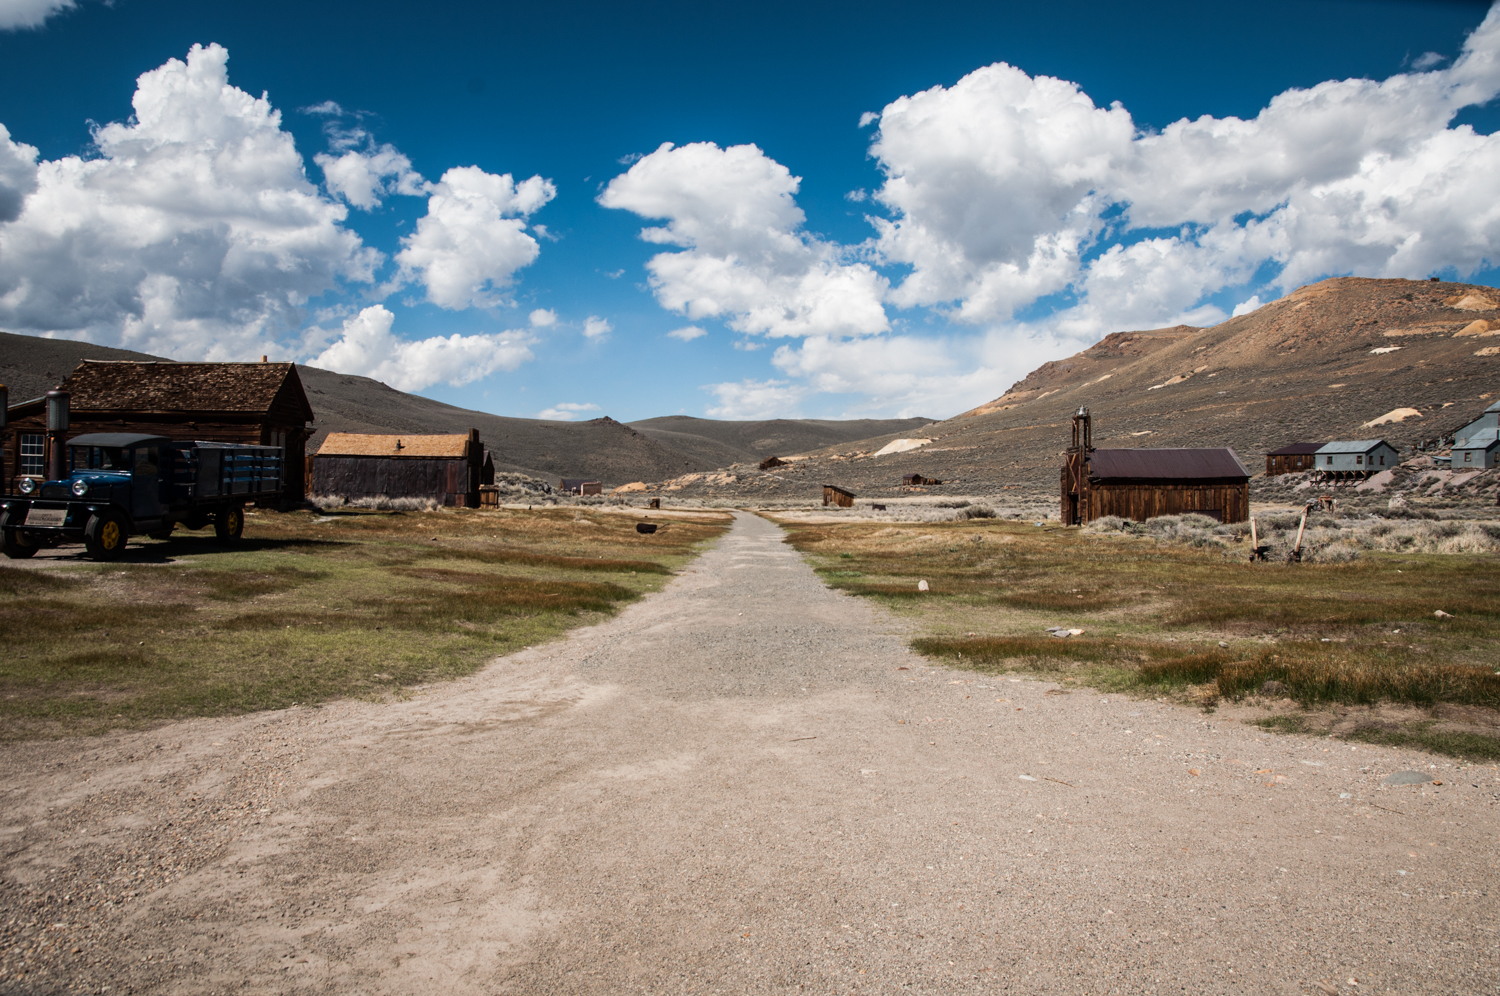 bodie-ca-jpg.30700_The New American Dream: Vagabond imagery and tales from the road._Travel Stories_Squat the Planet_12:03 PM